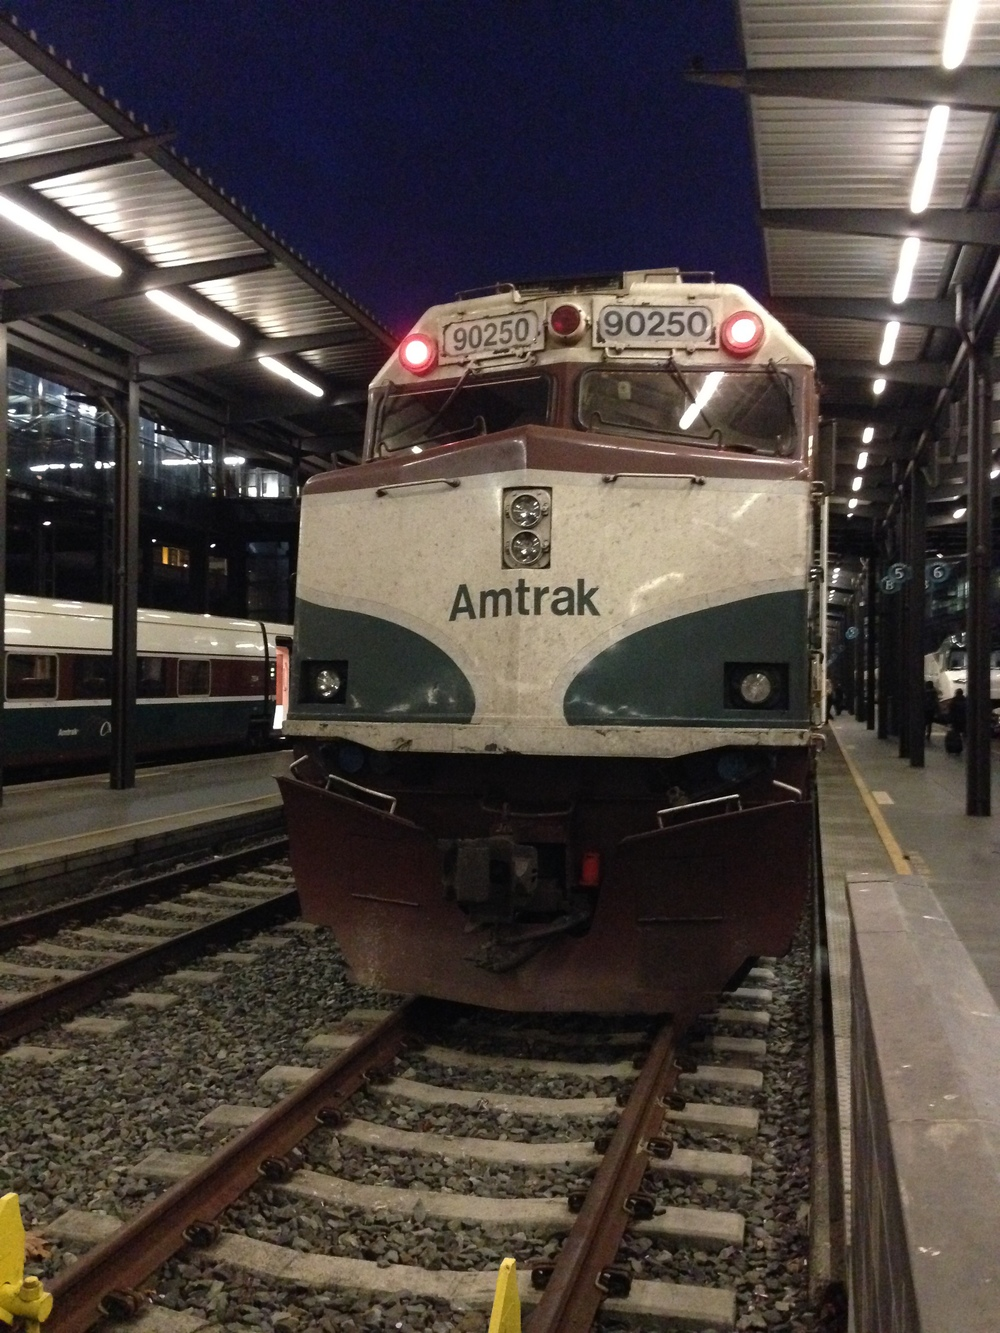 The Amtrak Cascades train - our ride down the coast to Portland.